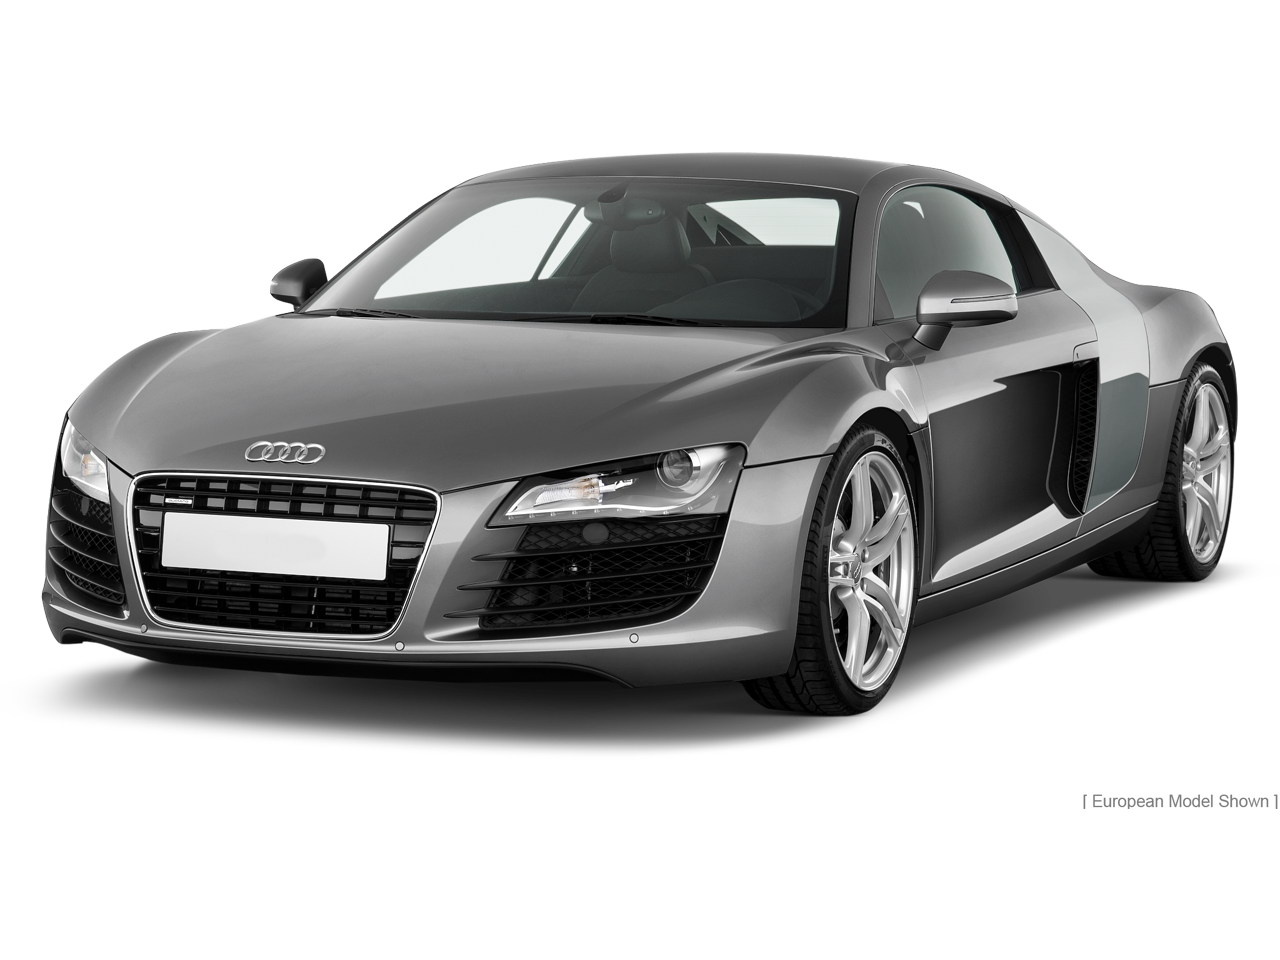 Get car loan with no credit at lowest rates in Canada with